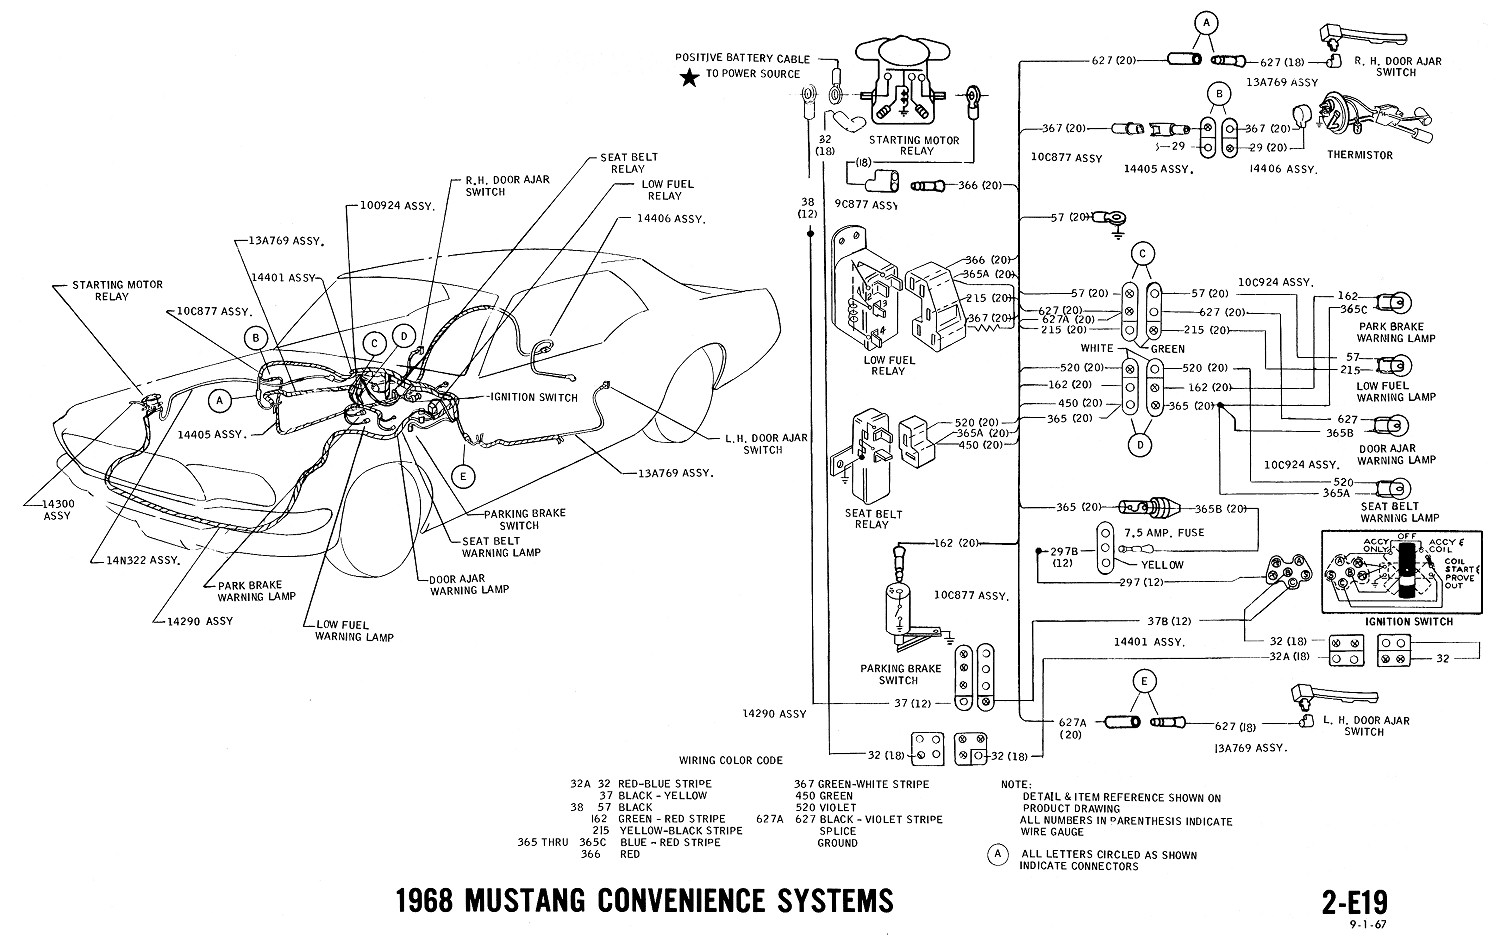 Mustang Fuel Gauge Wiring Diagram